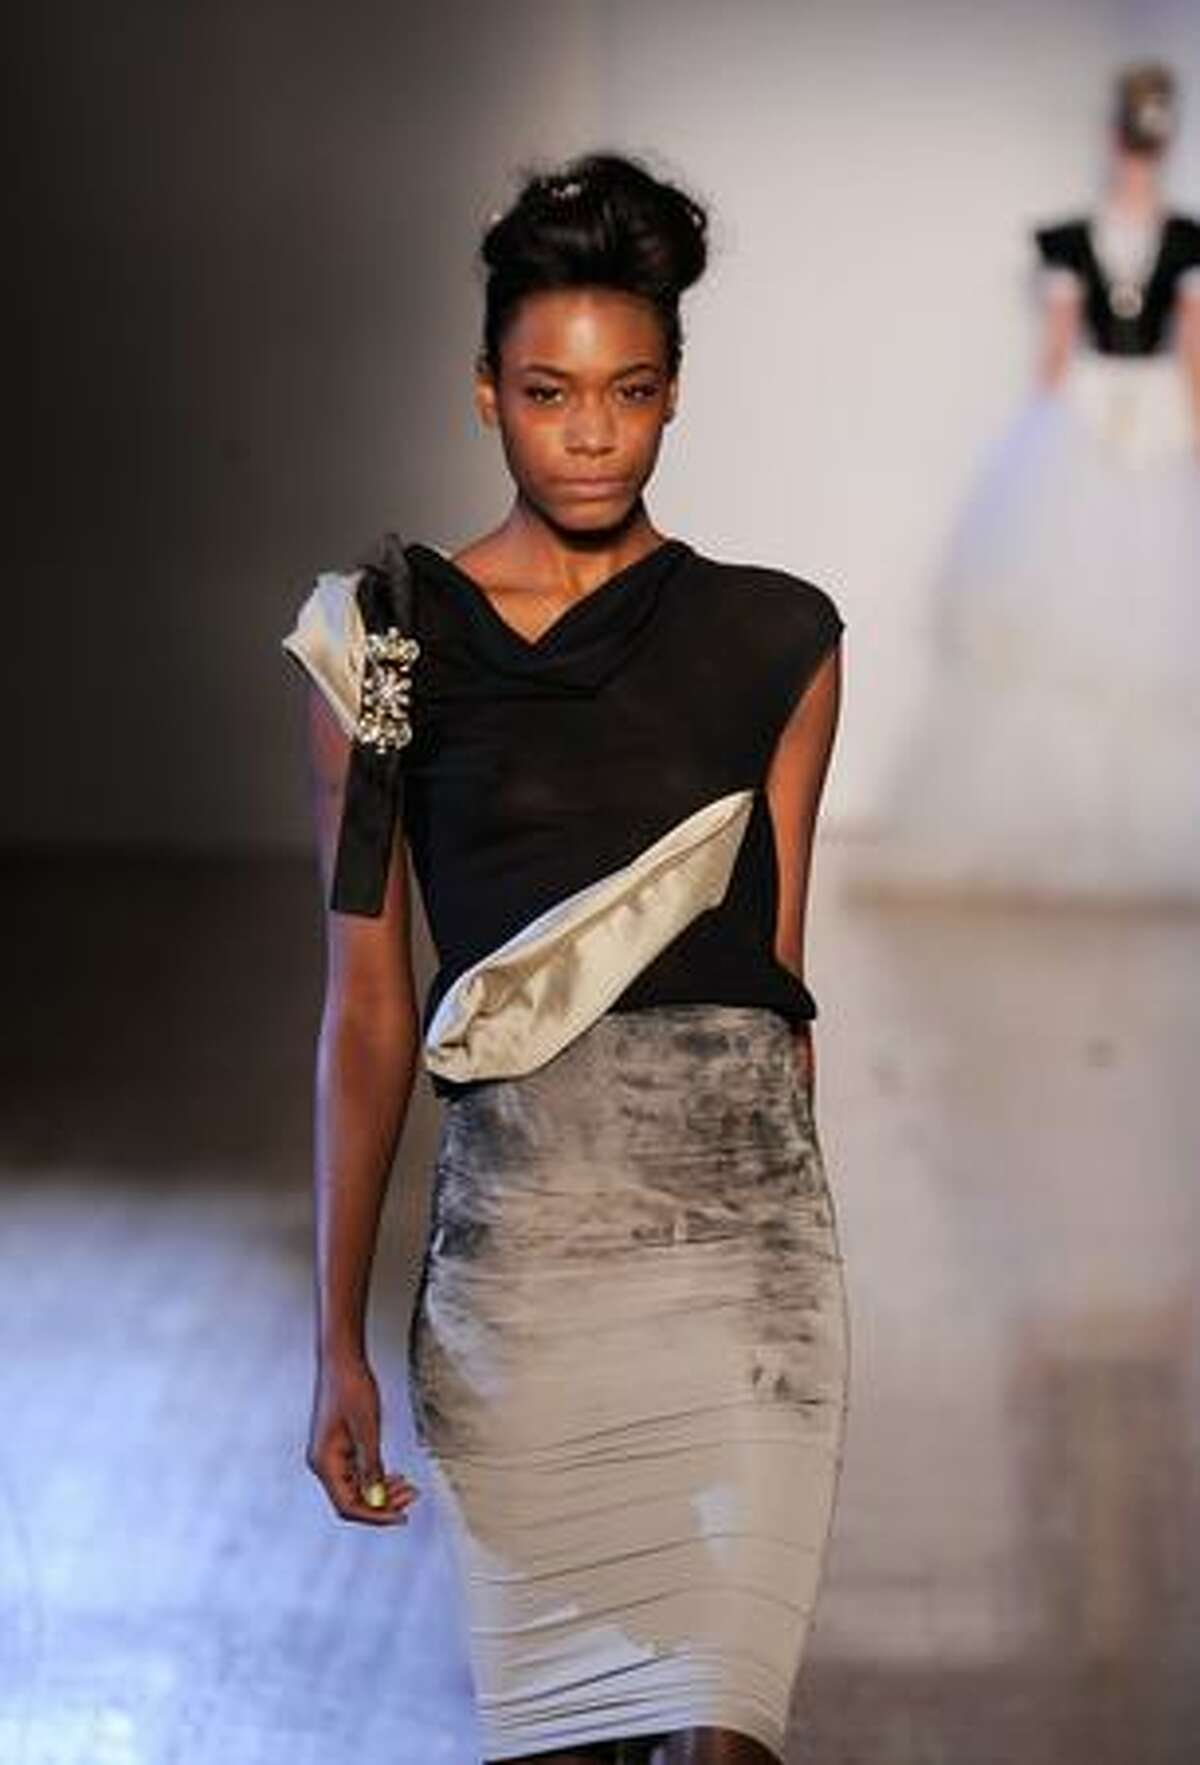 A model walks the runway at the Toni Maticevski Spring 2010 Fashion Show at the Altman Building on Sunday in New York City.